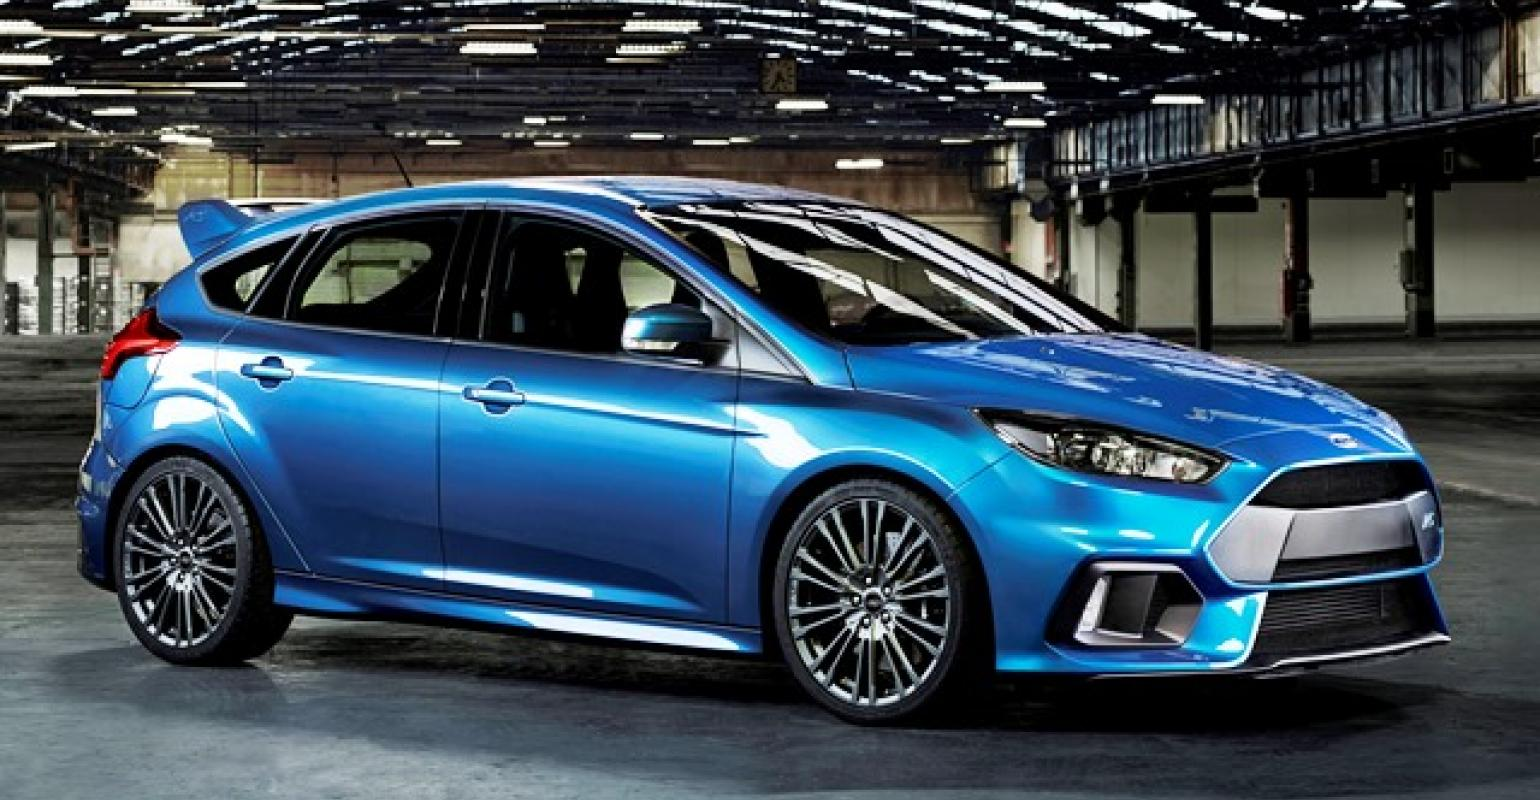 Ford focus rs joins awd hot hatch segment